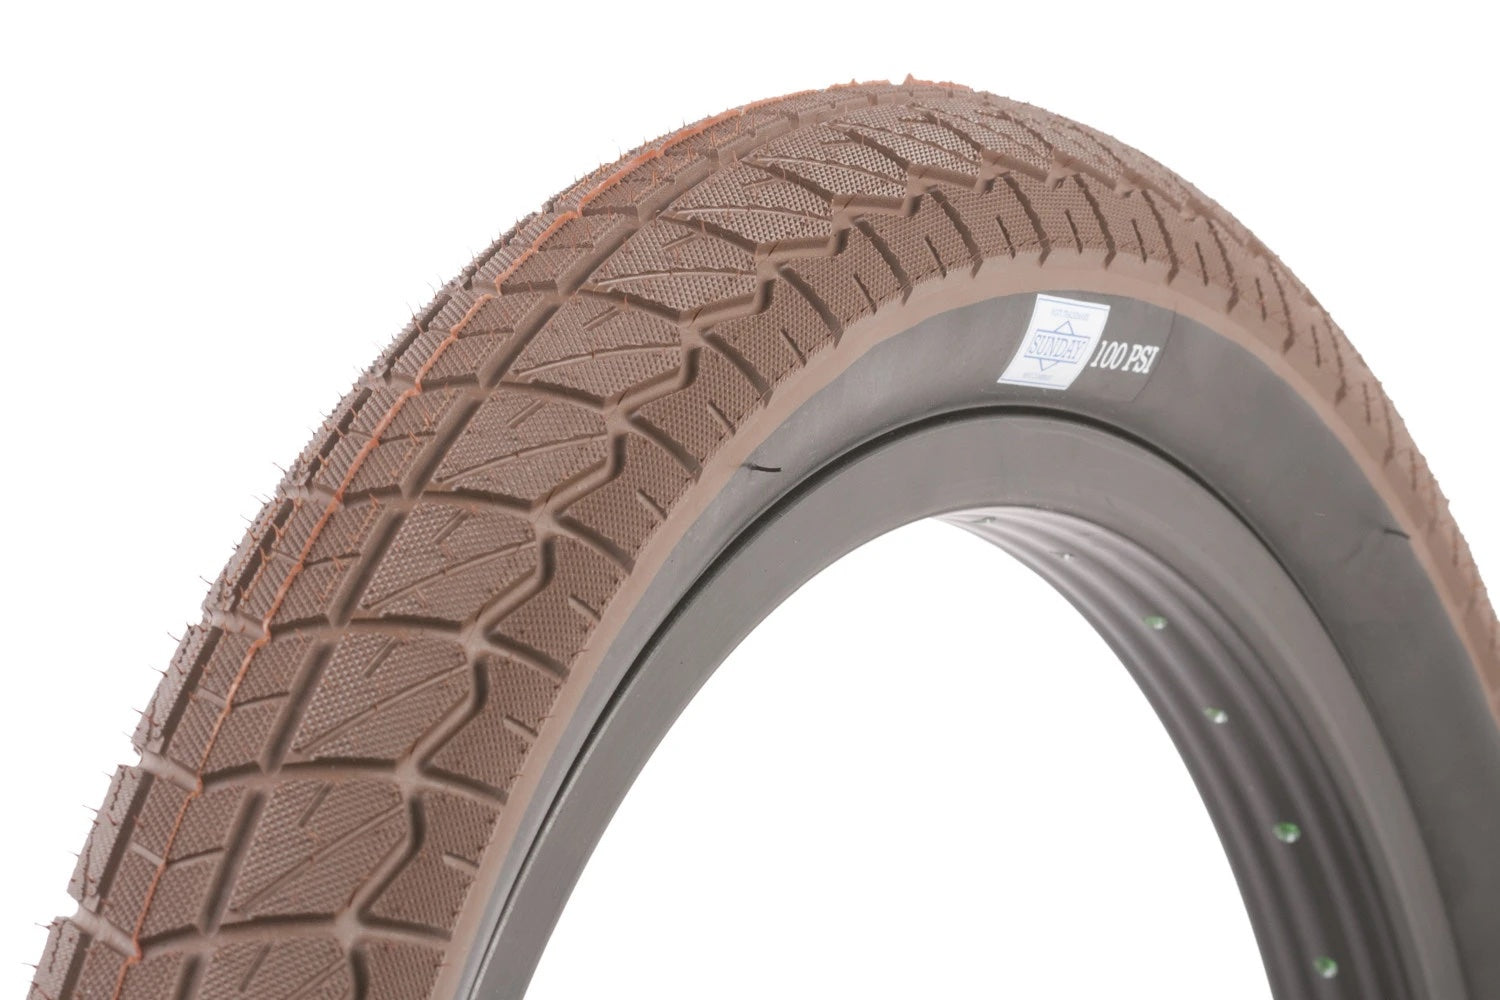 Sunday: Current tires Brown